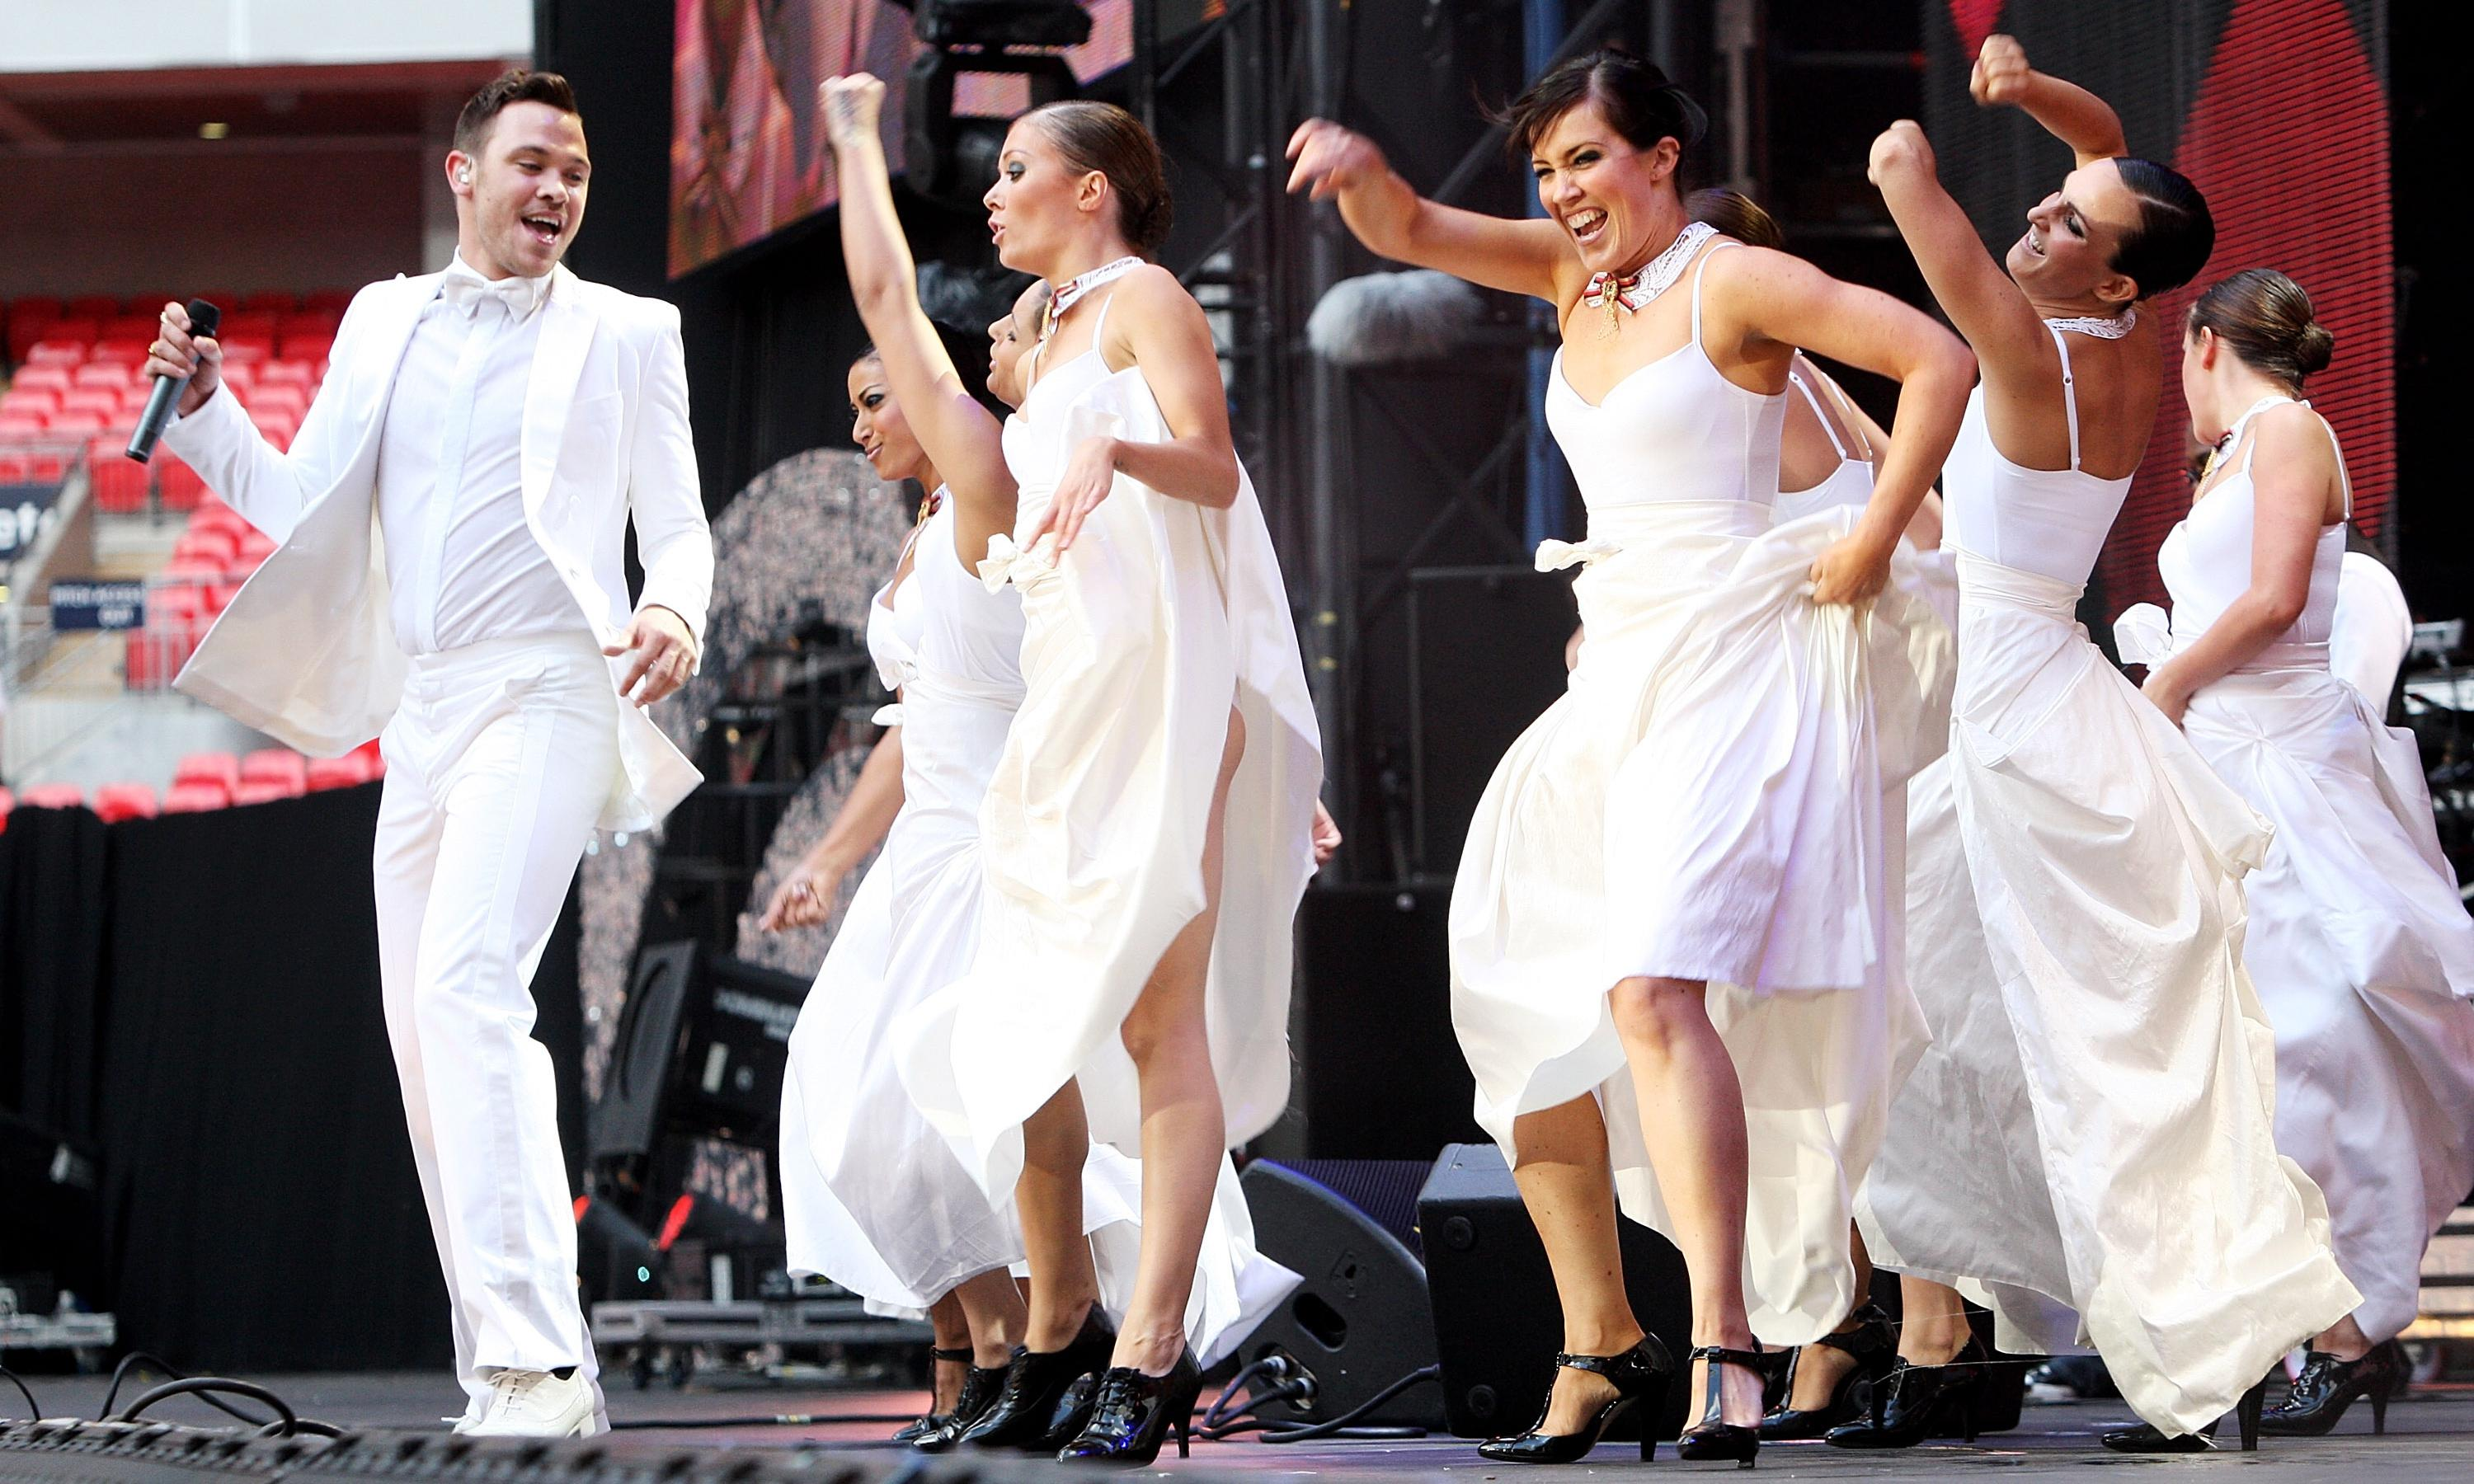 Will Young: 'If I were to do this concert now, I'd probably wear a skirt'